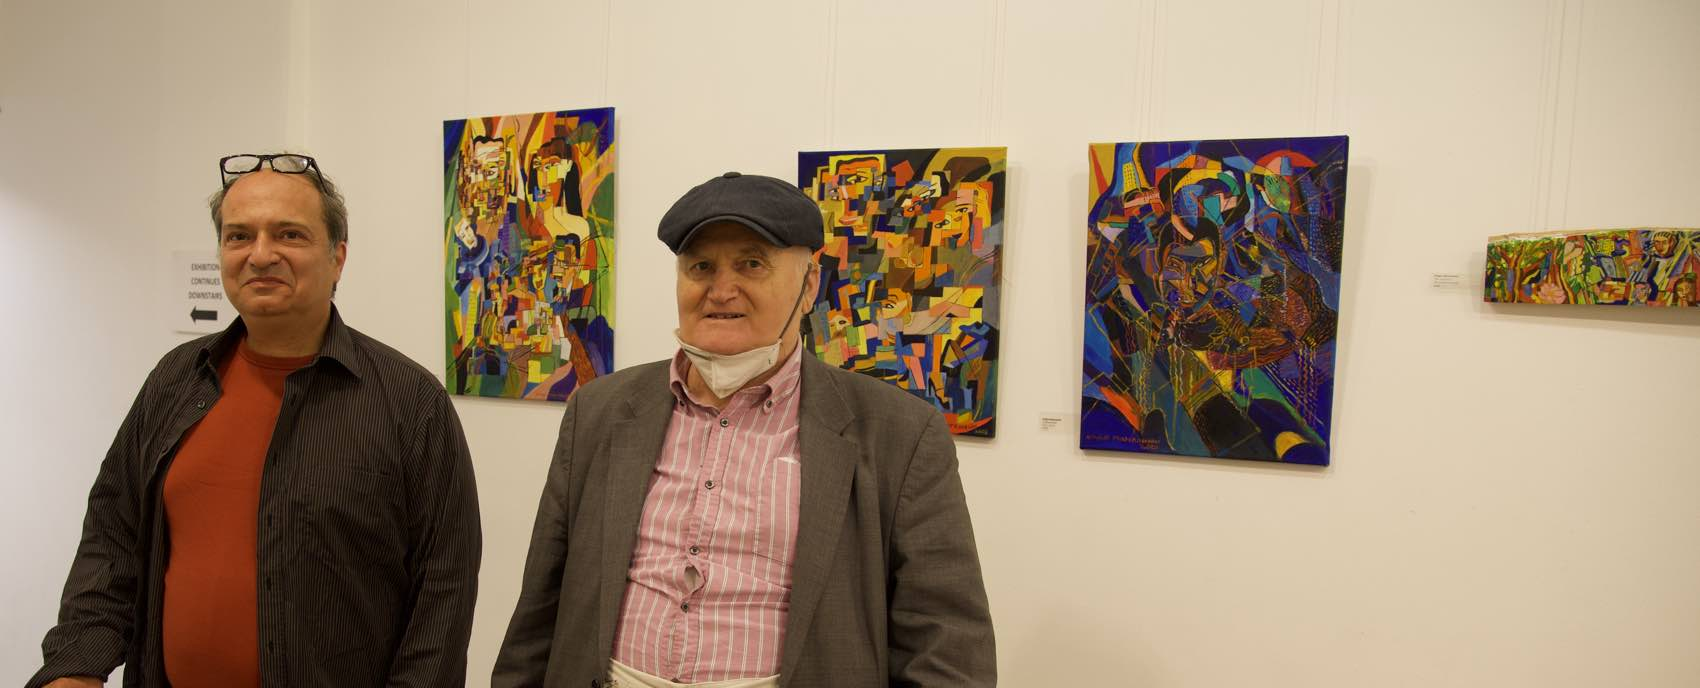 "Art Life Matters: ""Interesting paintings"", the local David Ceasar told artist Biagio Mastroianni"